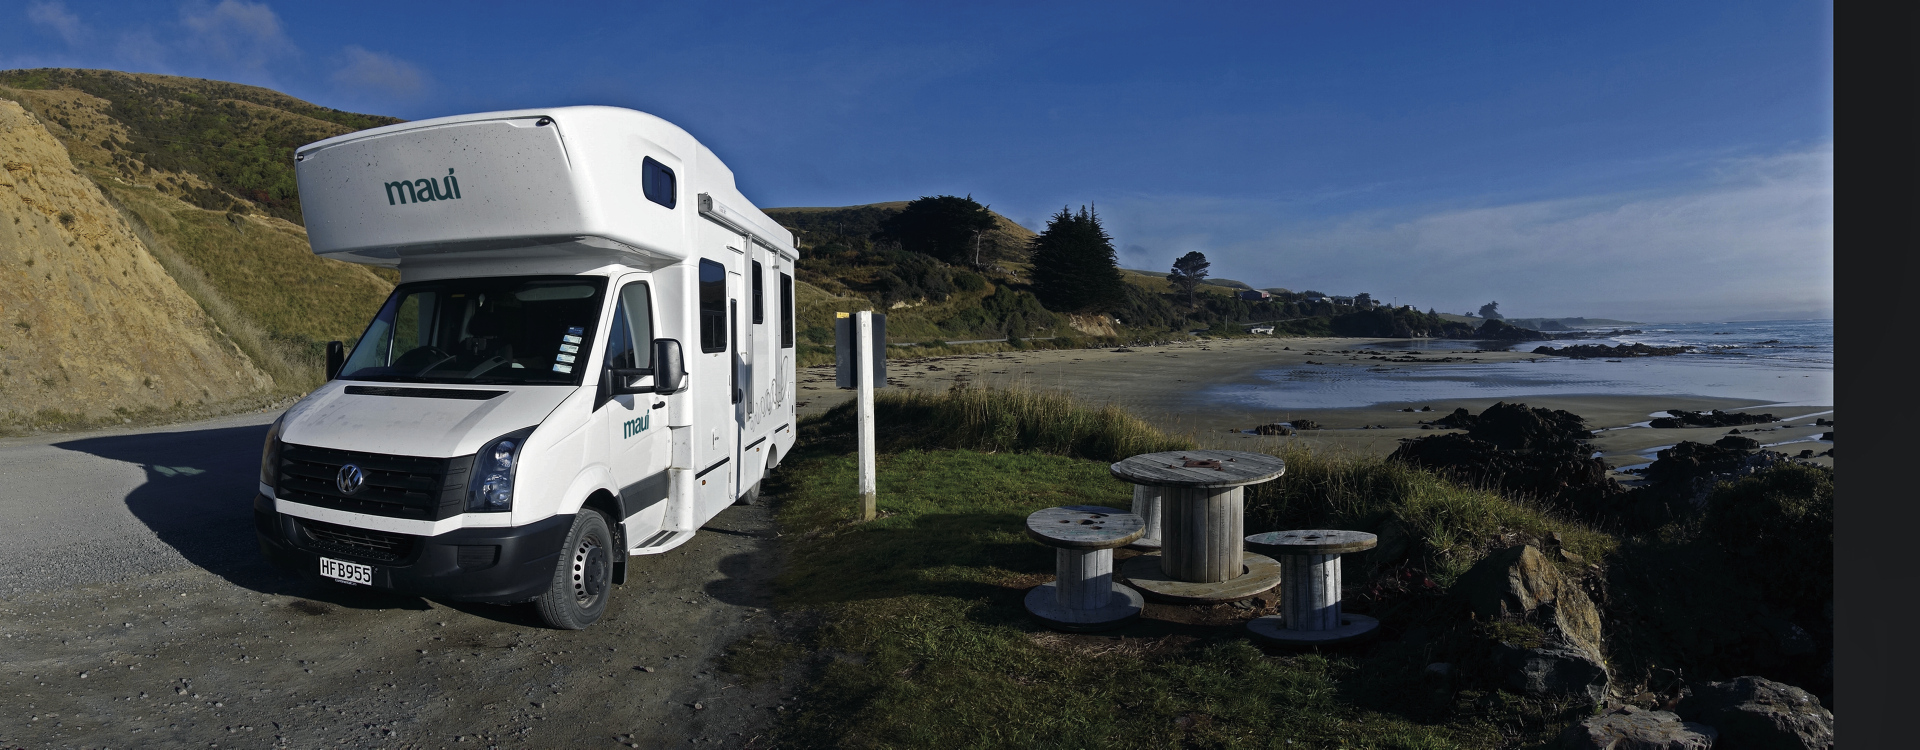 maui river wohnmobil mieten in neuseeland. Black Bedroom Furniture Sets. Home Design Ideas